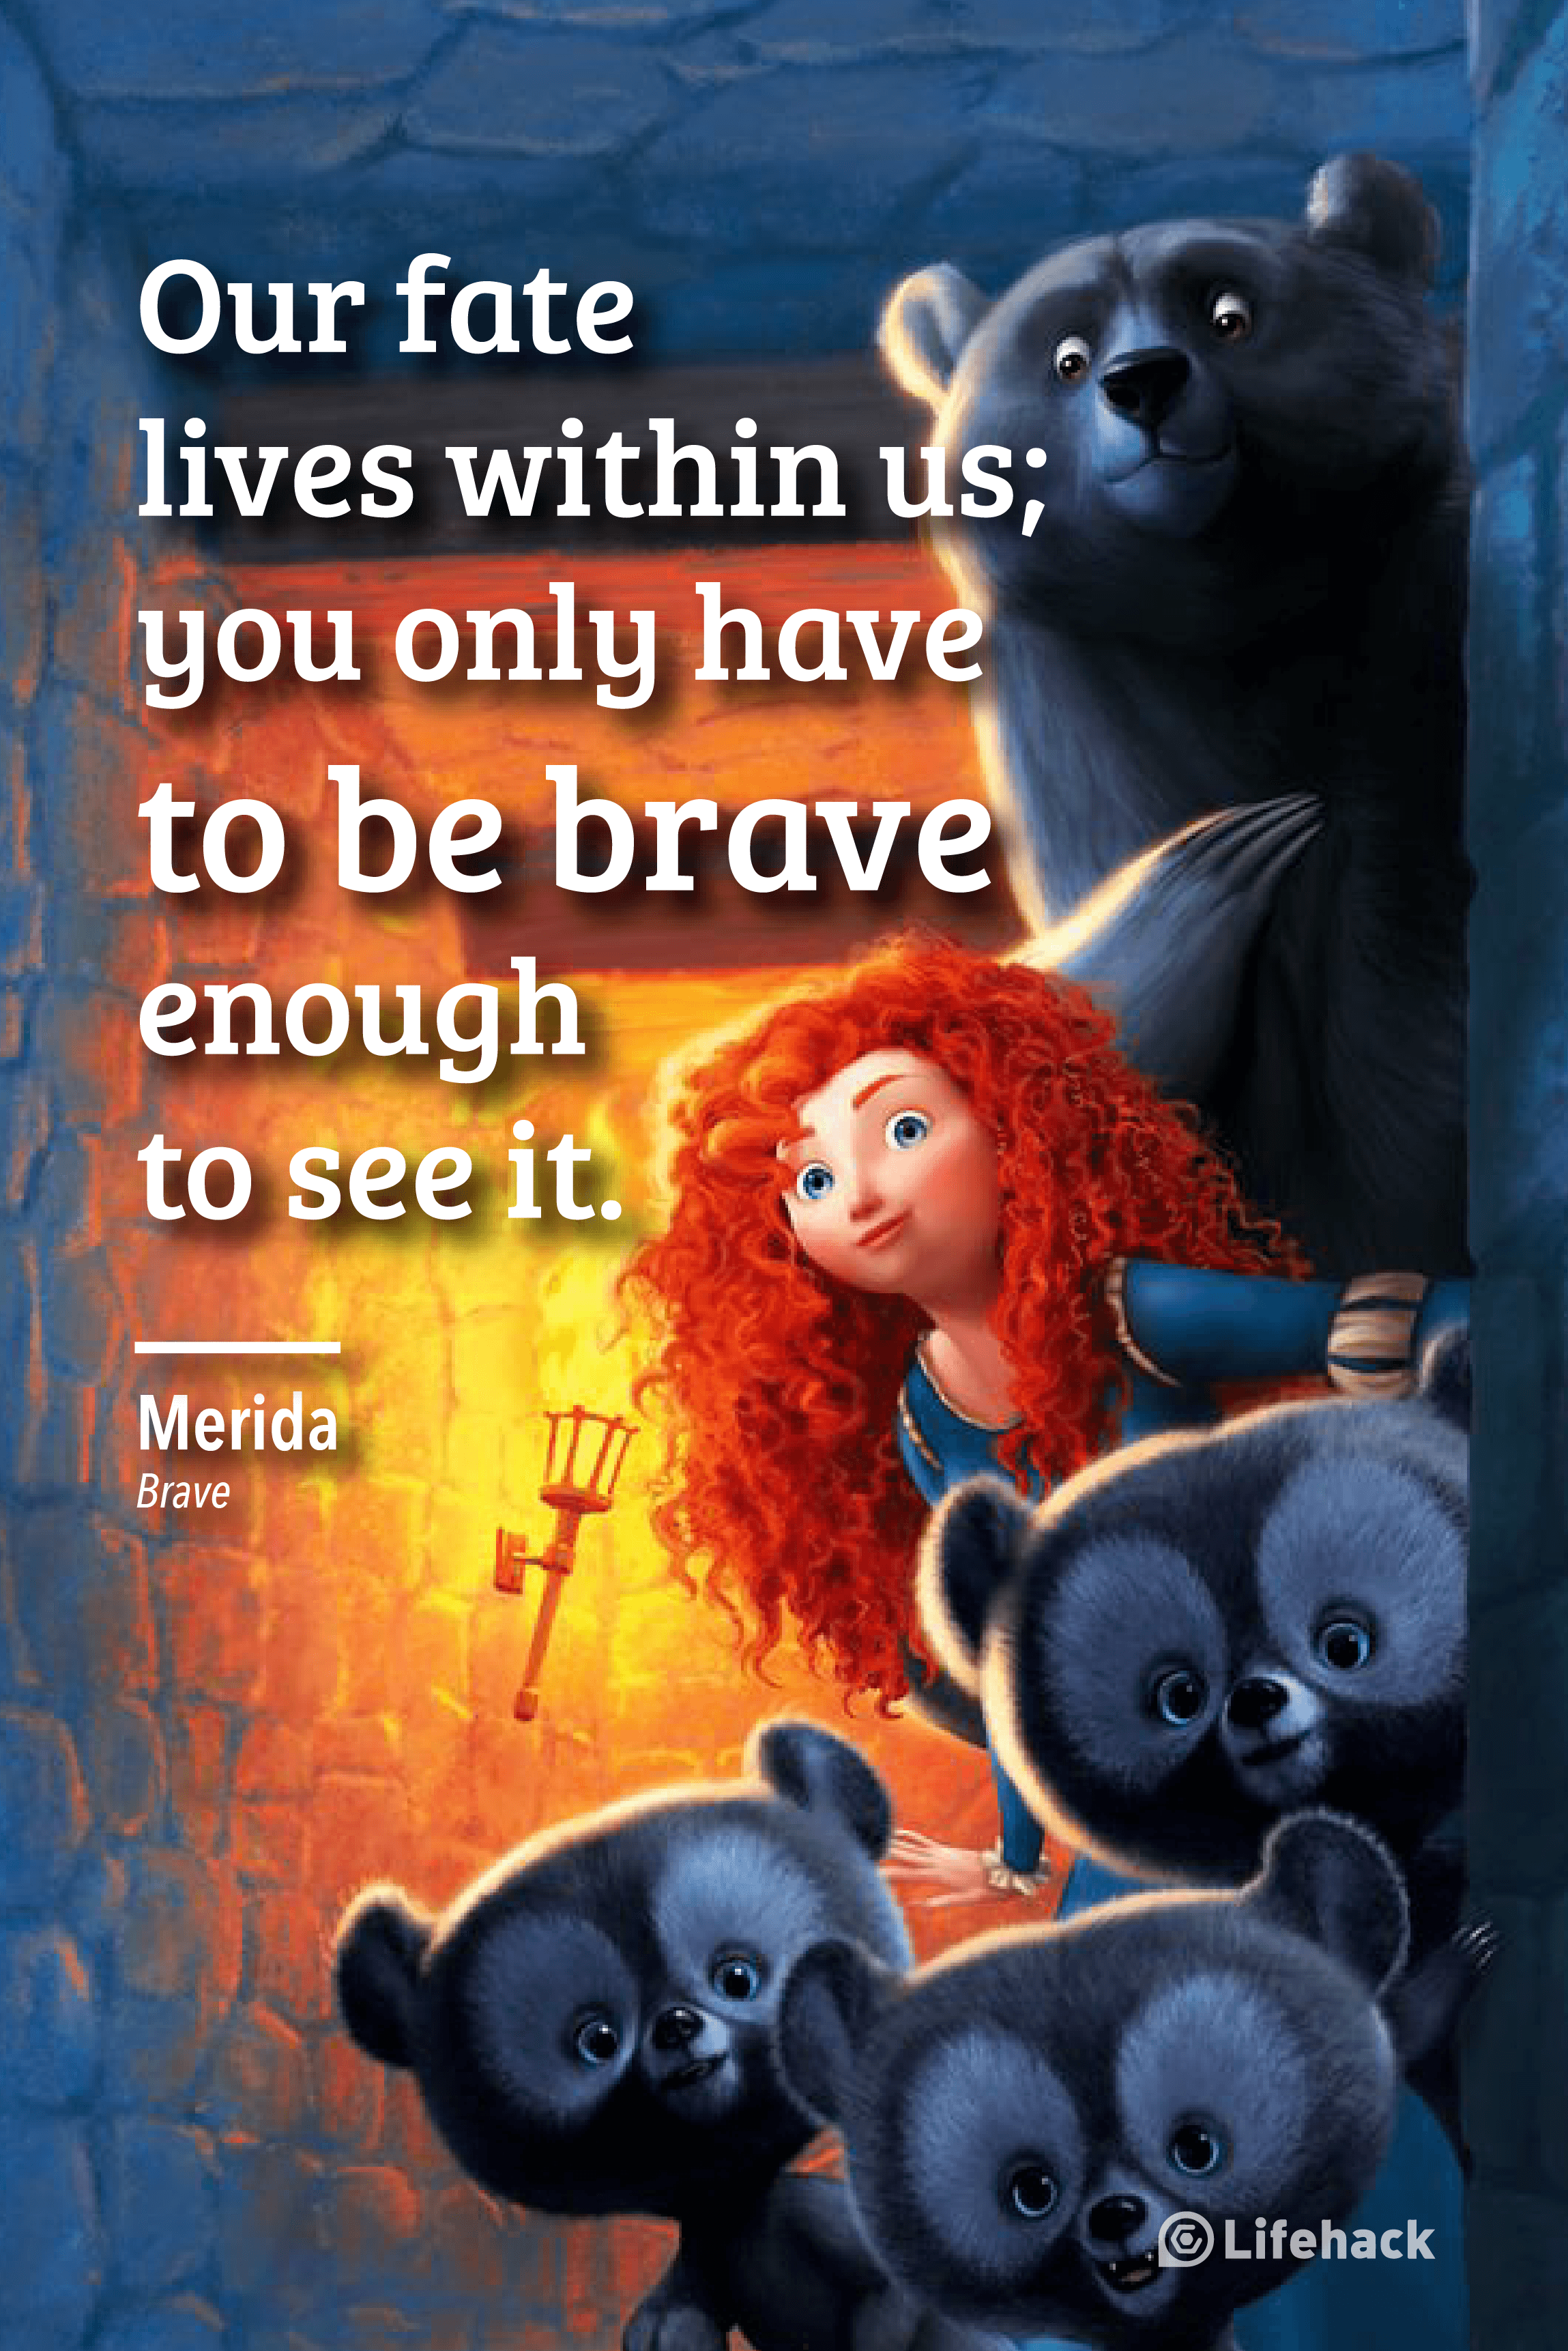 20 Charming Disney Quotes To Warm Your Heart Disney Wallpaper Disney Princess Wallpaper Disney Brave